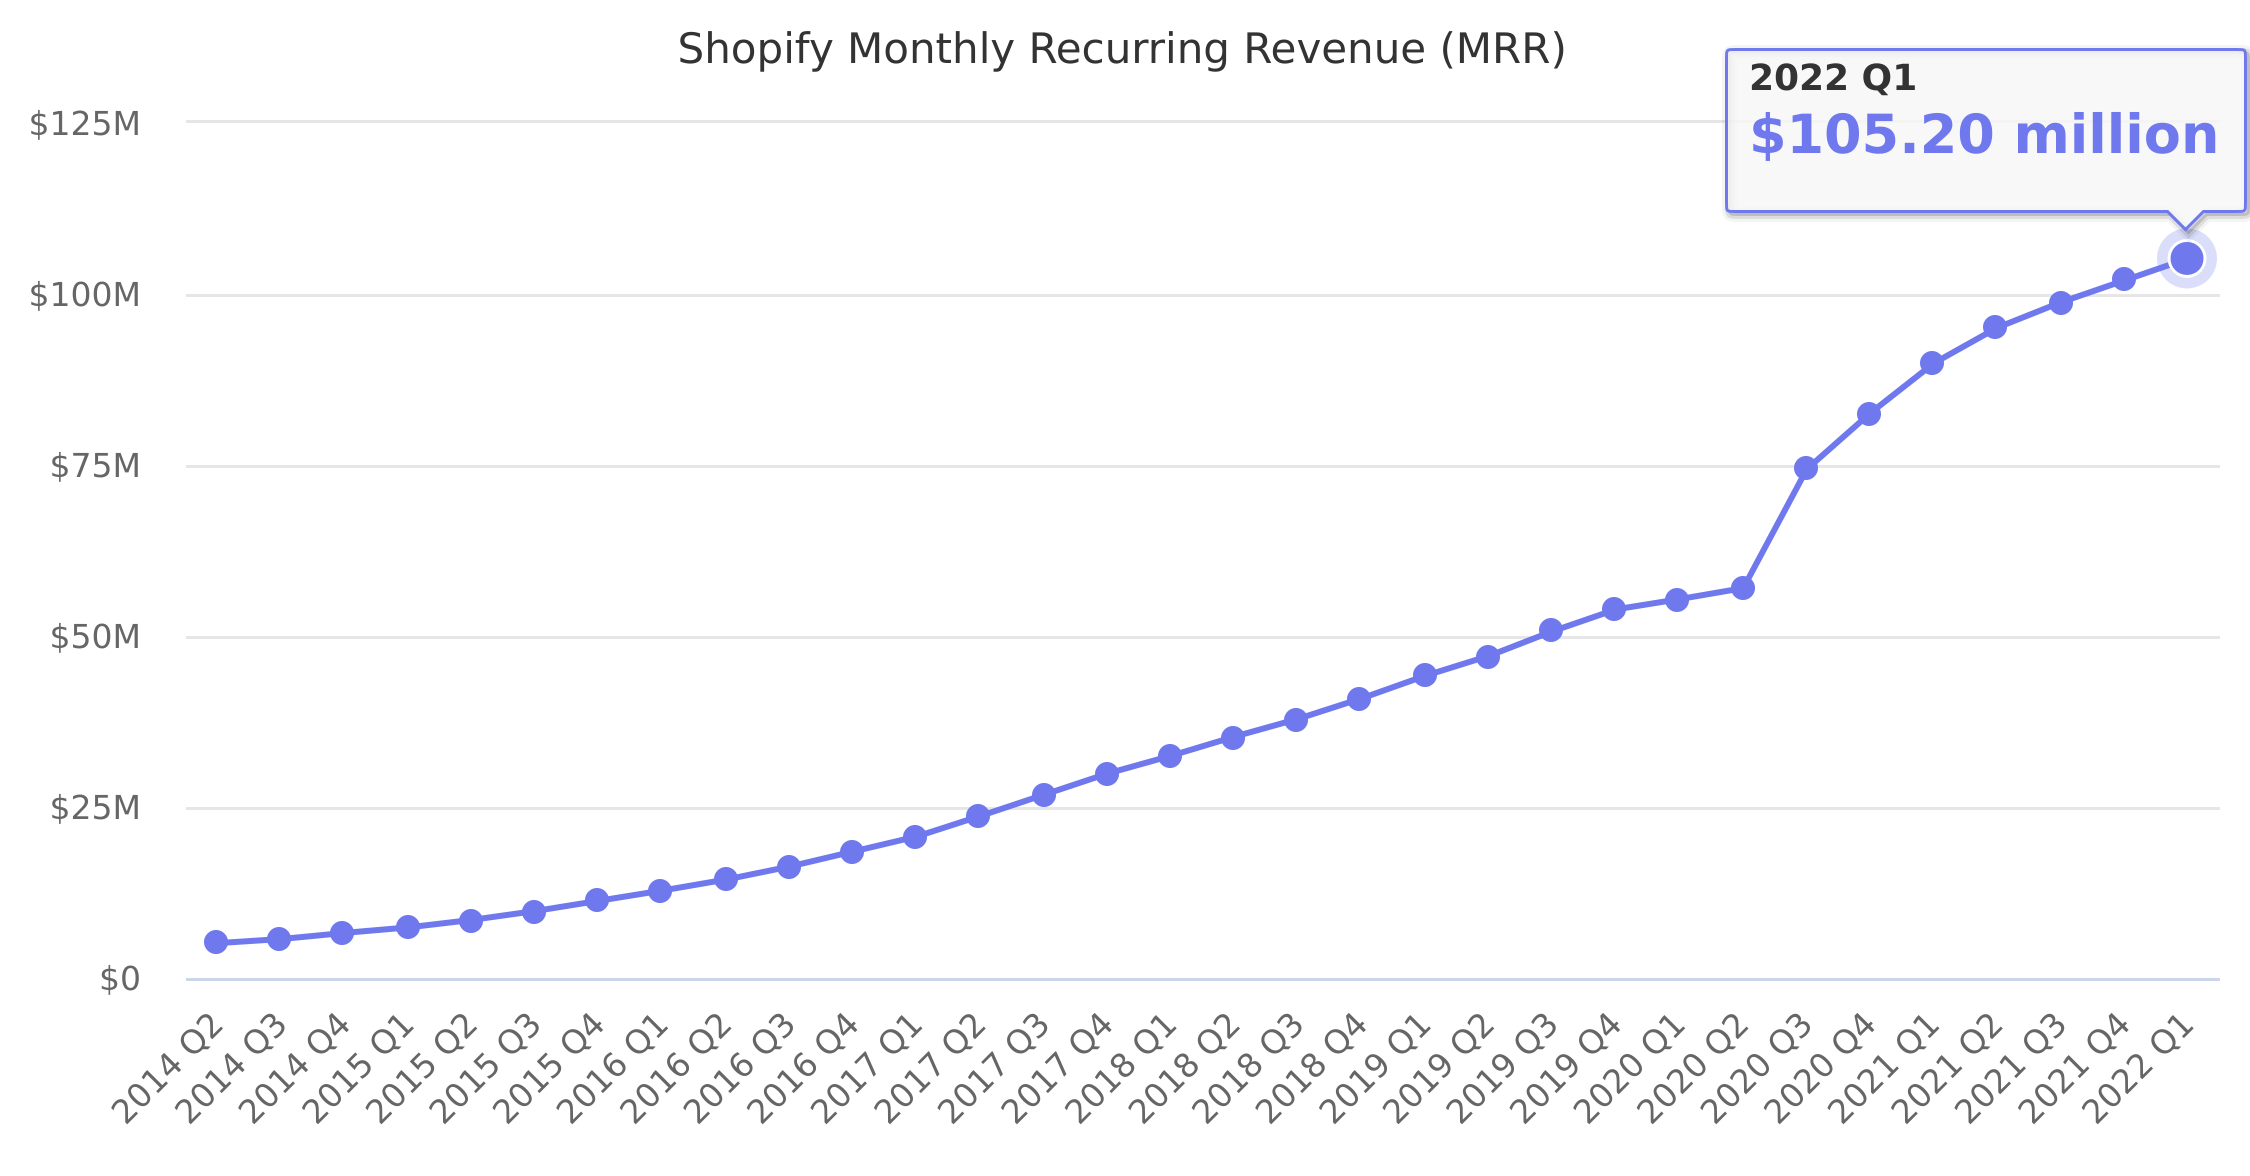 Shopify Monthly Recurring Revenue (MRR)